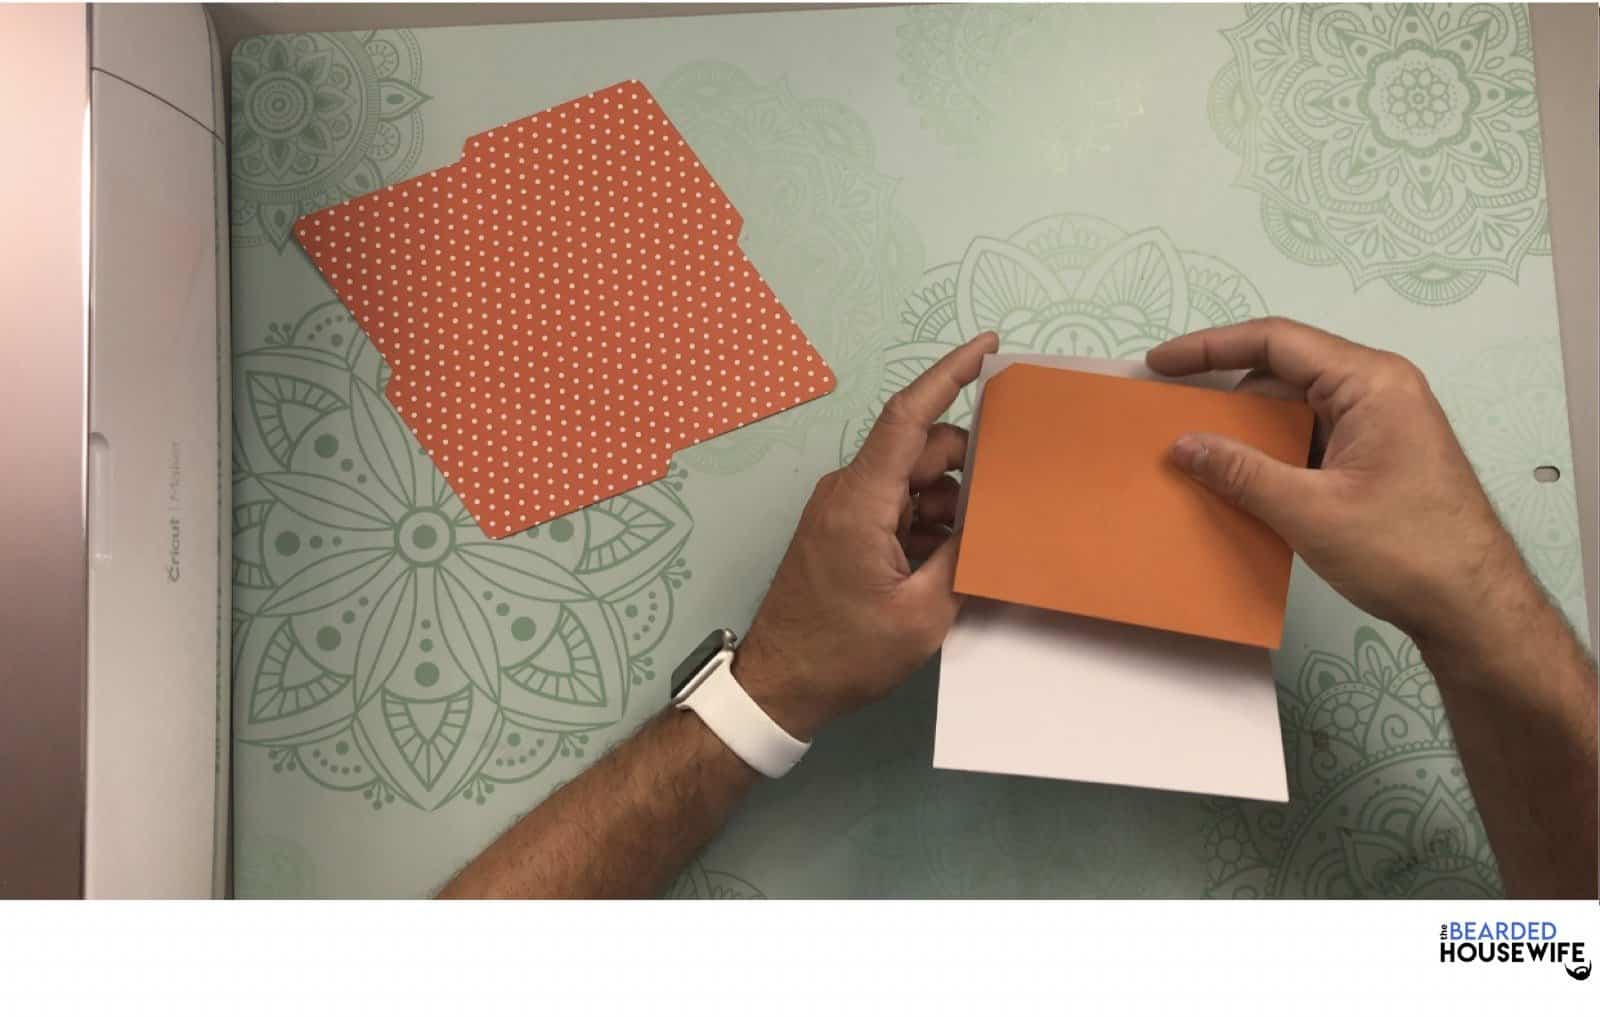 place the insert layer into the slits on the outer card